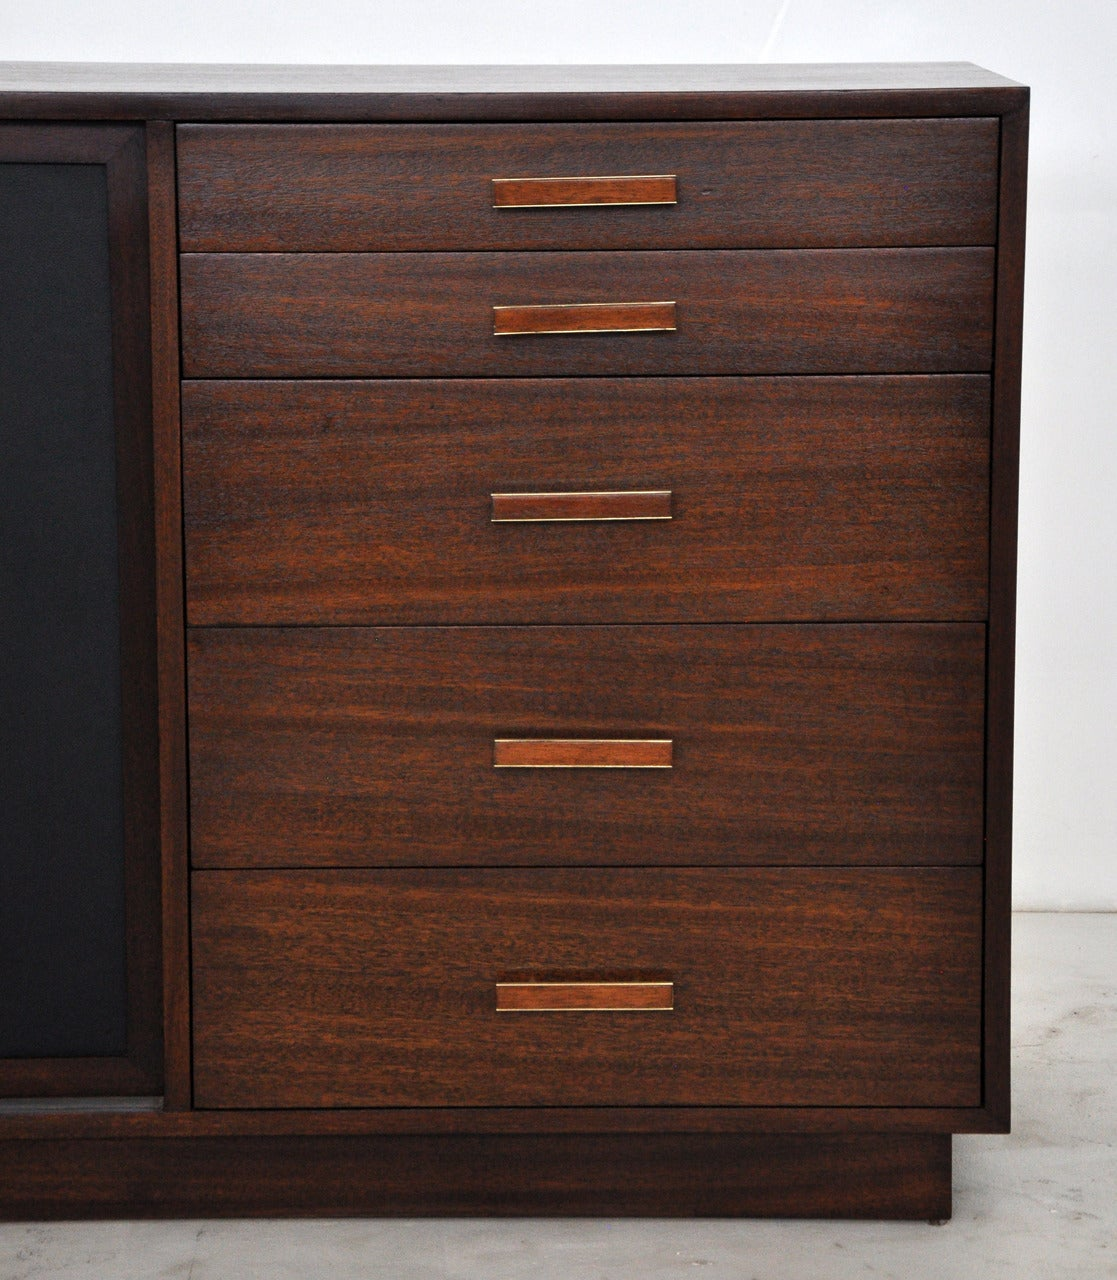 1280 #A54C26 Harvey Probber Credenza With Leather Doors At 1stdibs save image Harvey Doors 43271117